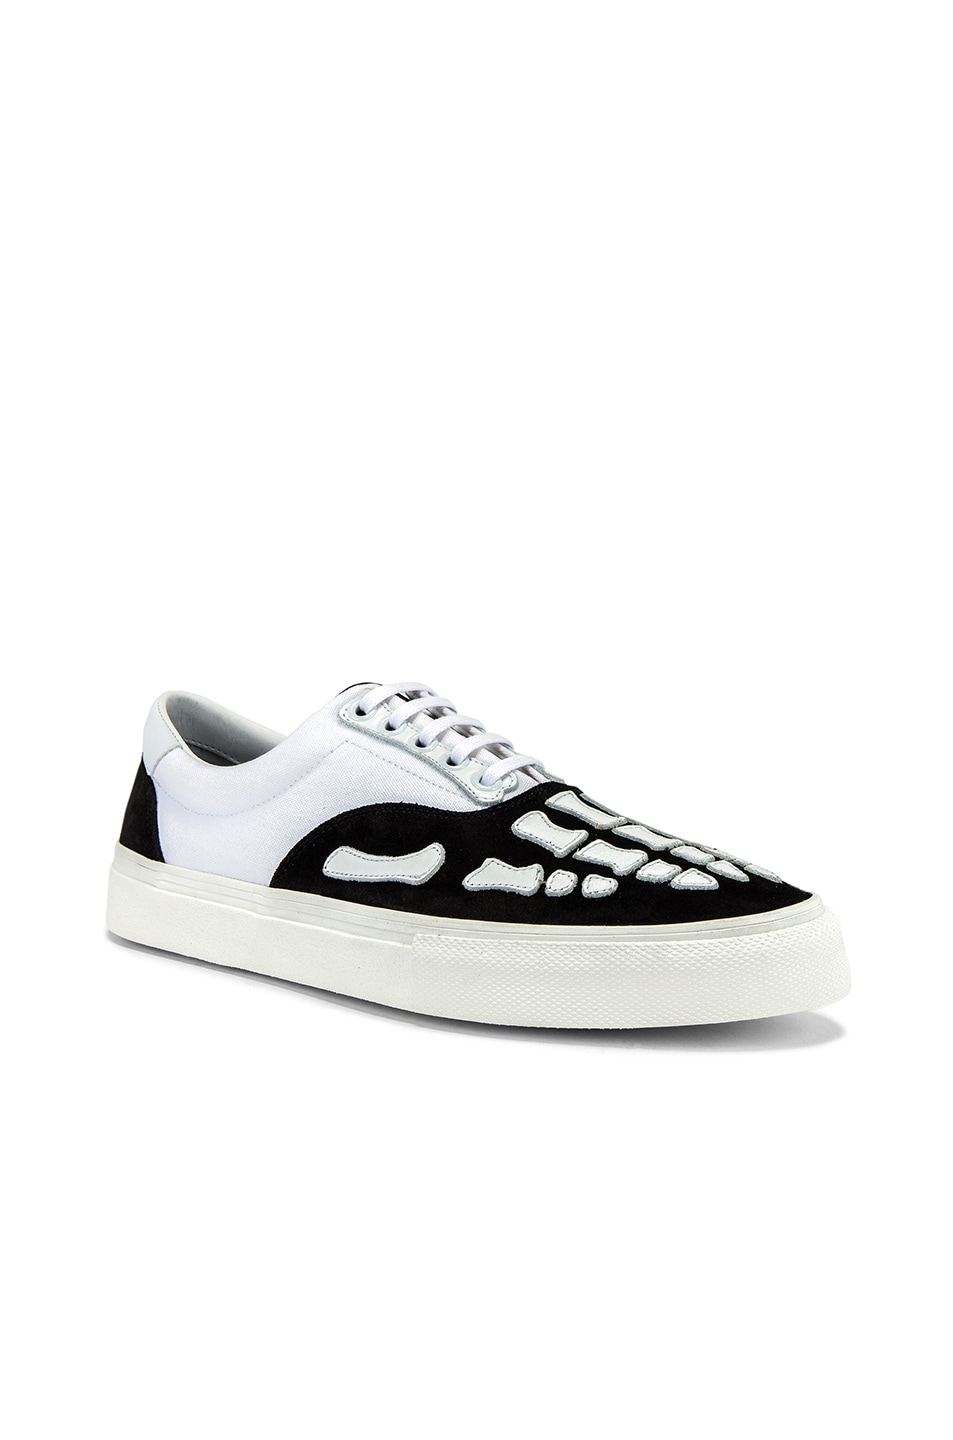 Image 1 of Amiri Skel Toe Lace Up Sneaker in Black & White